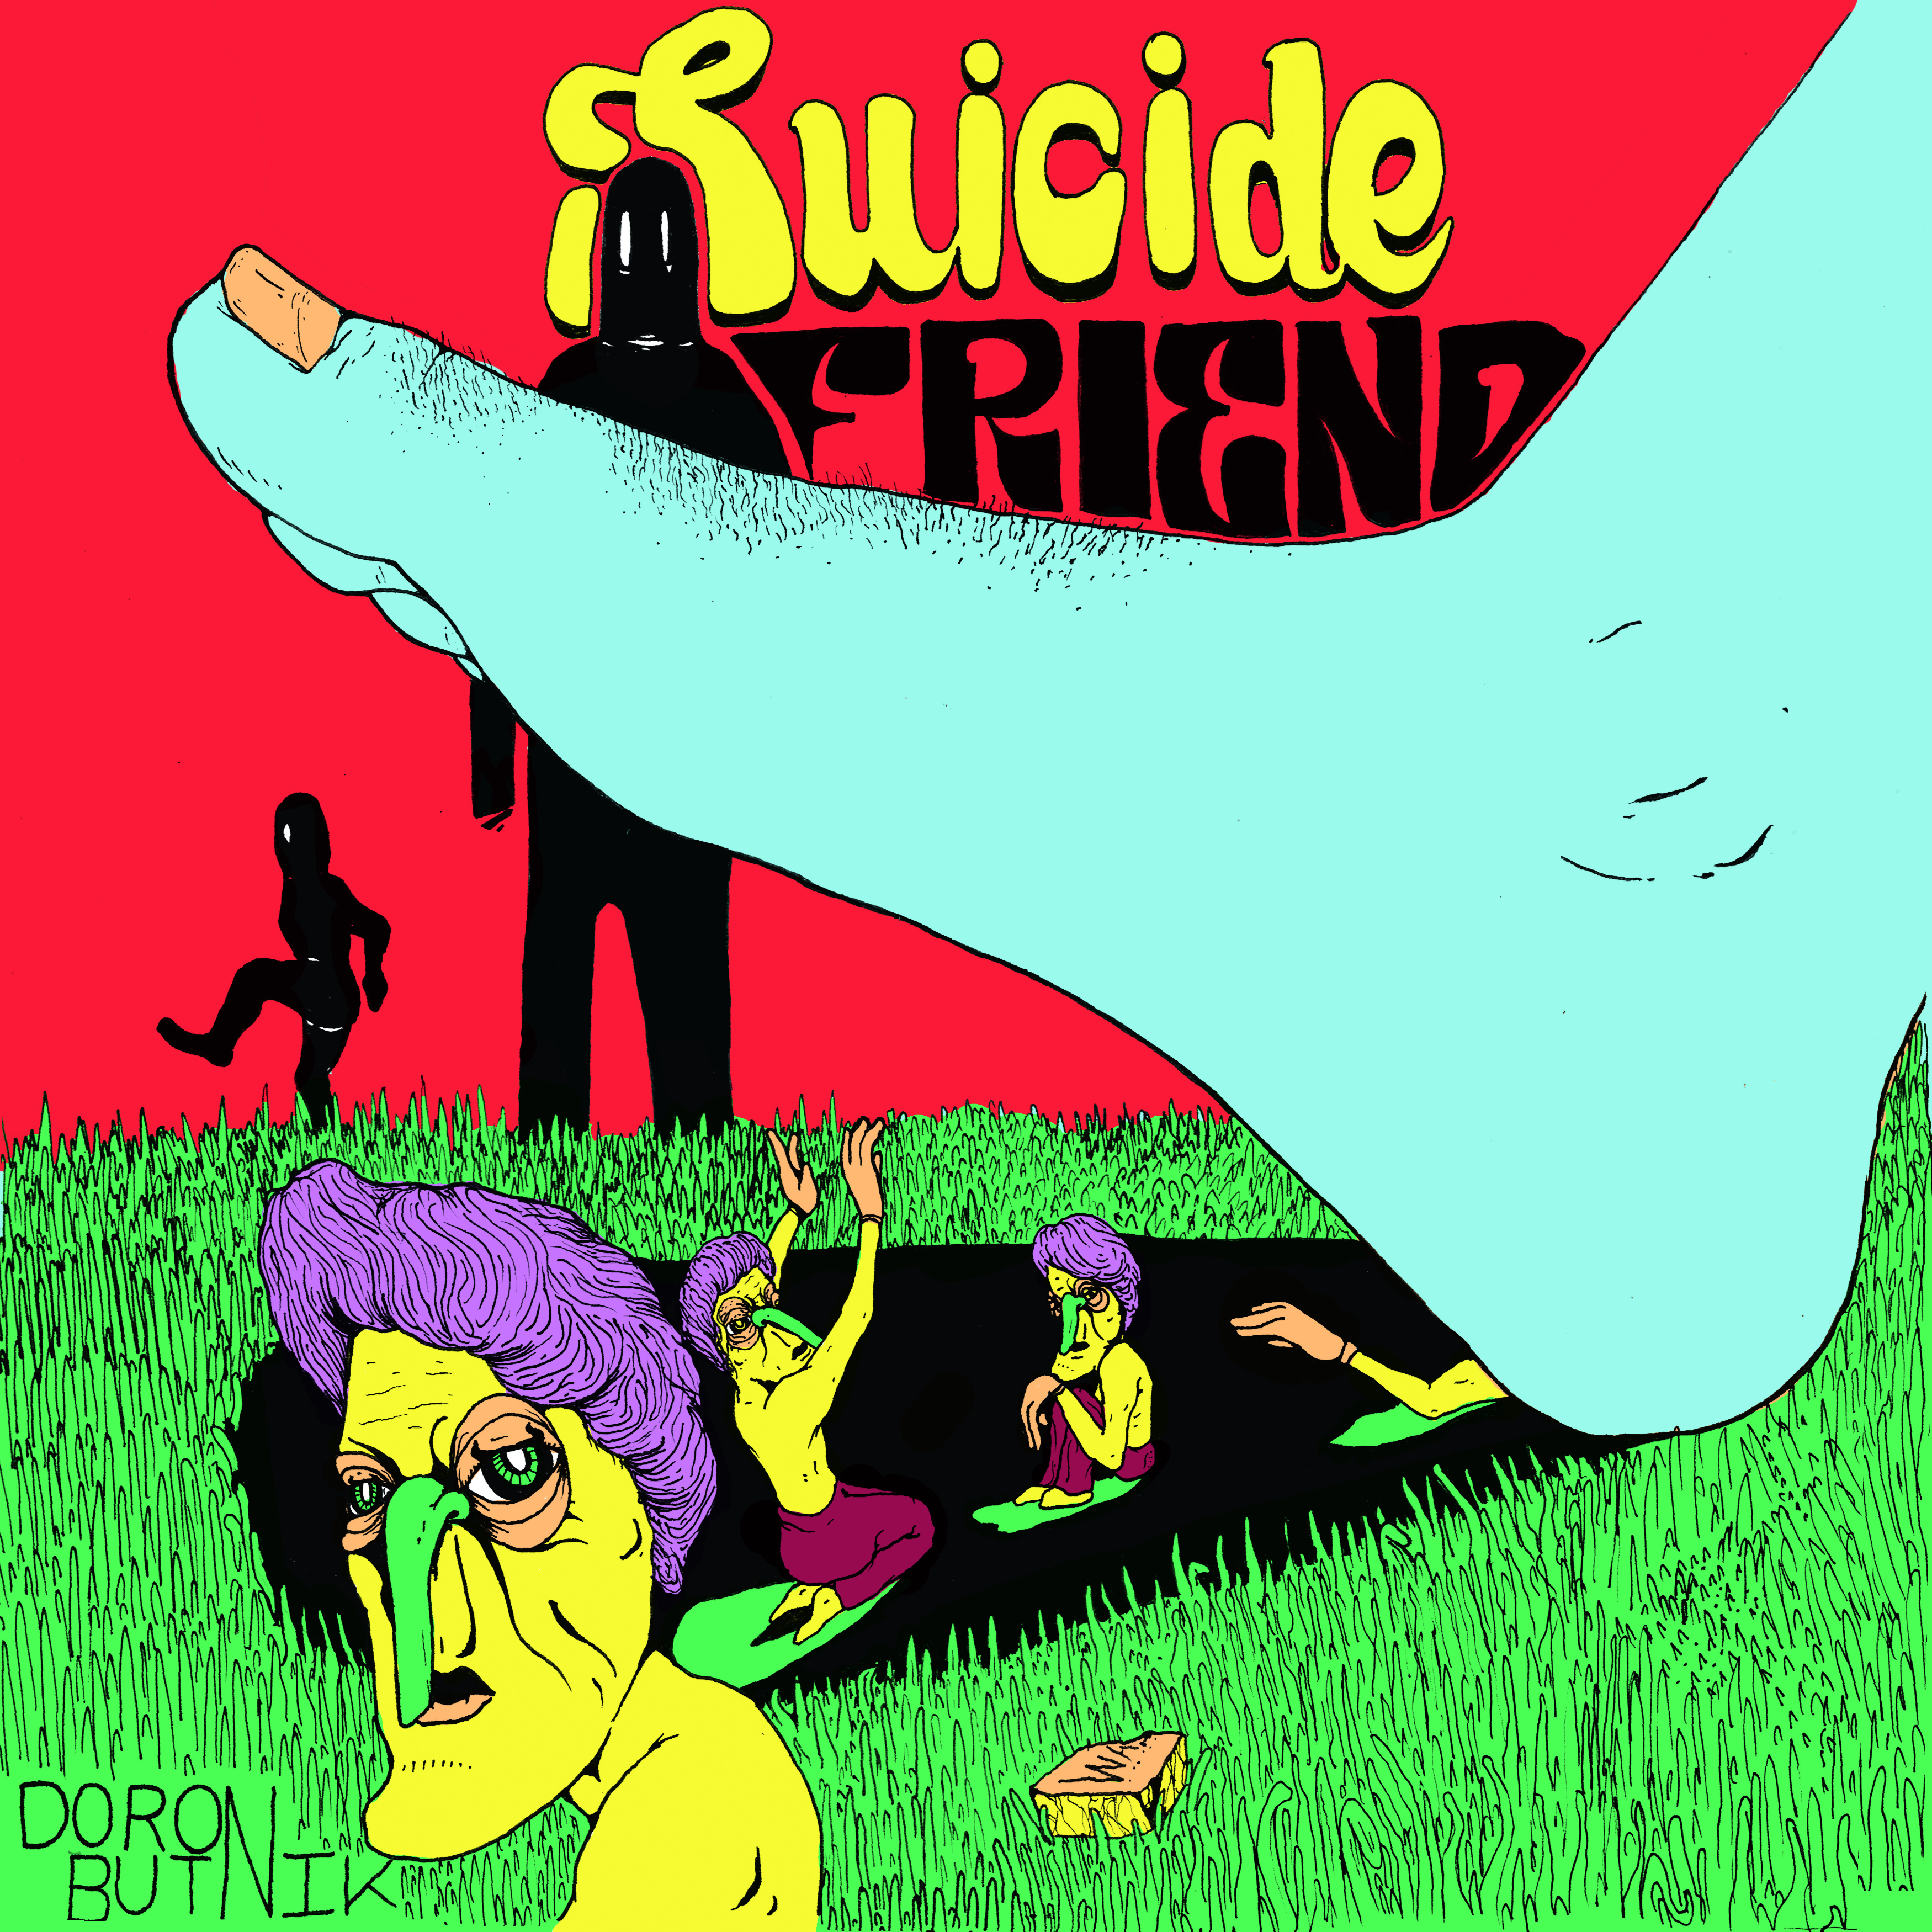 SUICIDE FRIEND